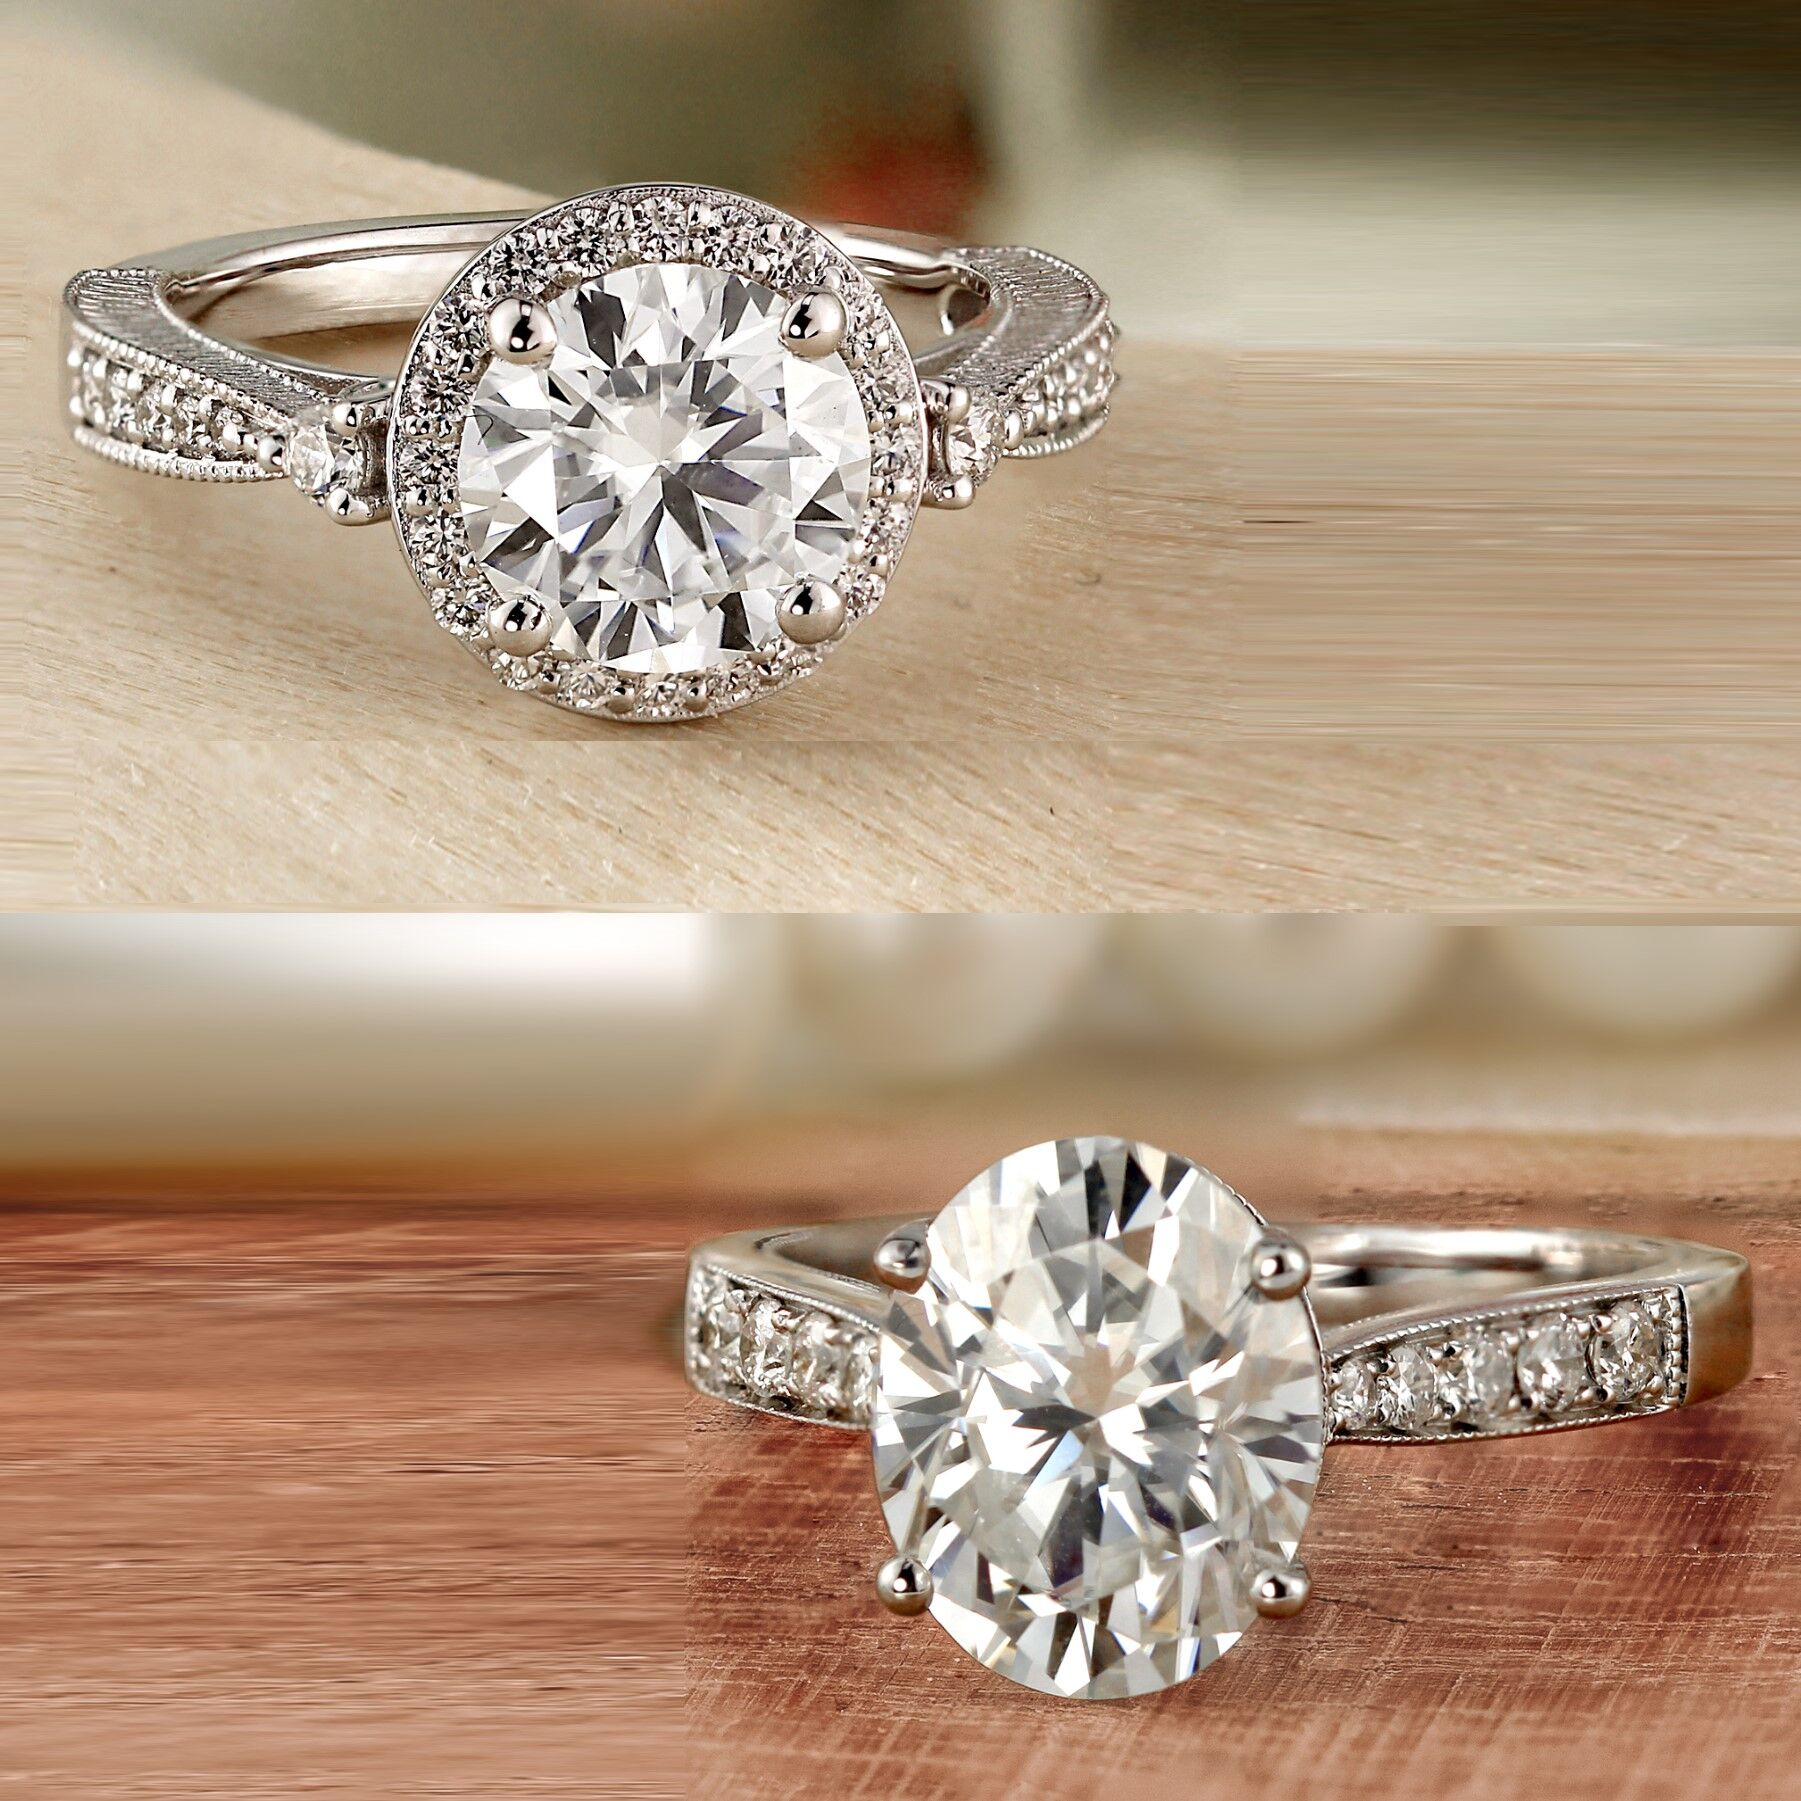 Round vs. Oval Engagement Rings: The Top Five Considerations